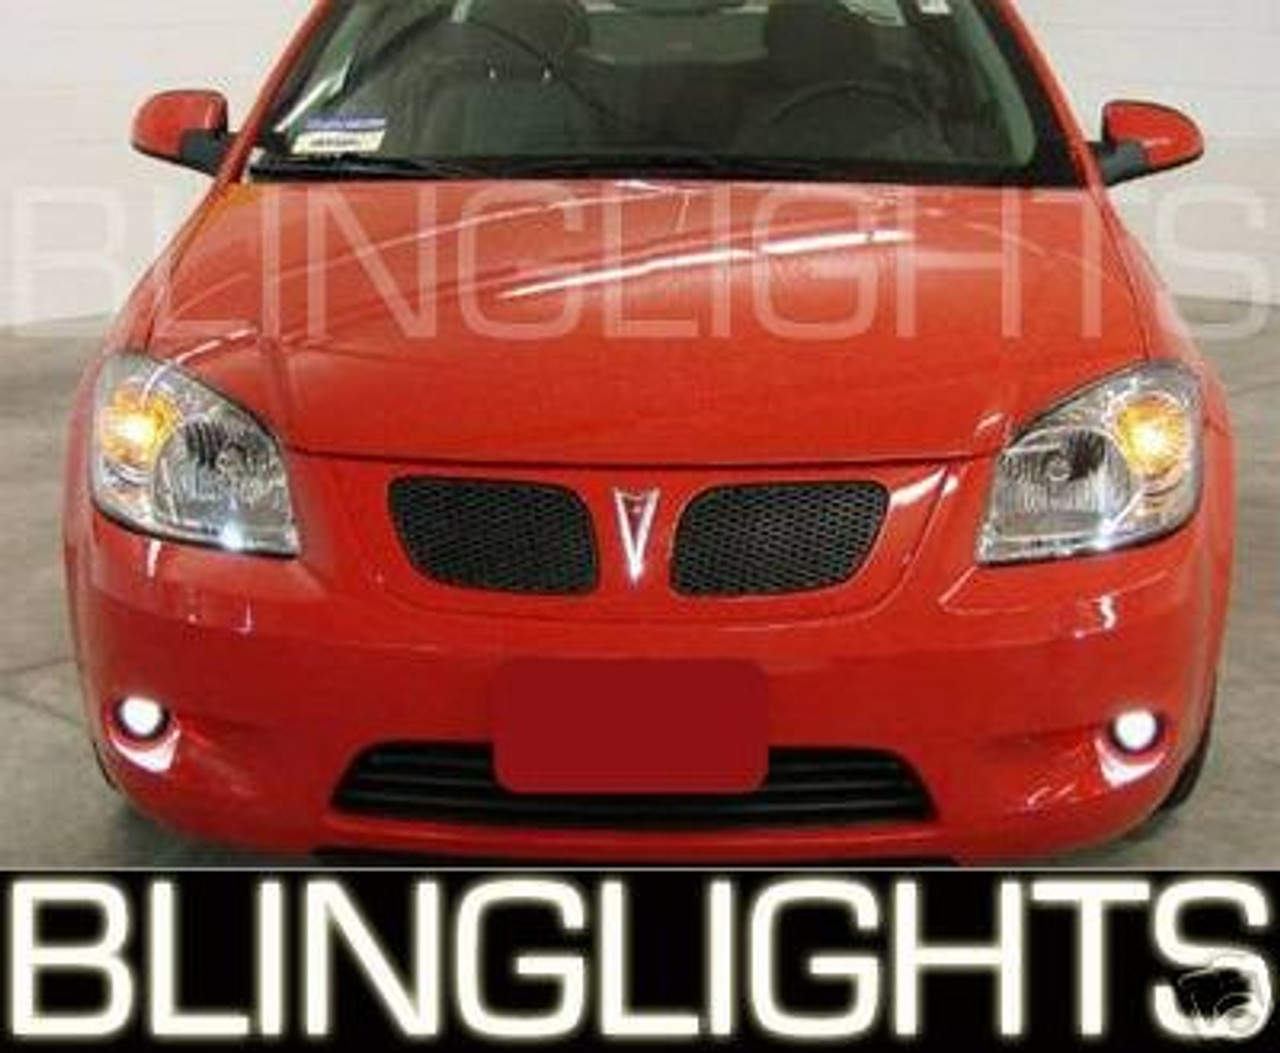 2005 2006 2007 2008 2009 2010 Pontiac G5 Halo Angel Eye Foglamps Foglights Driving Fog Lamps Lights